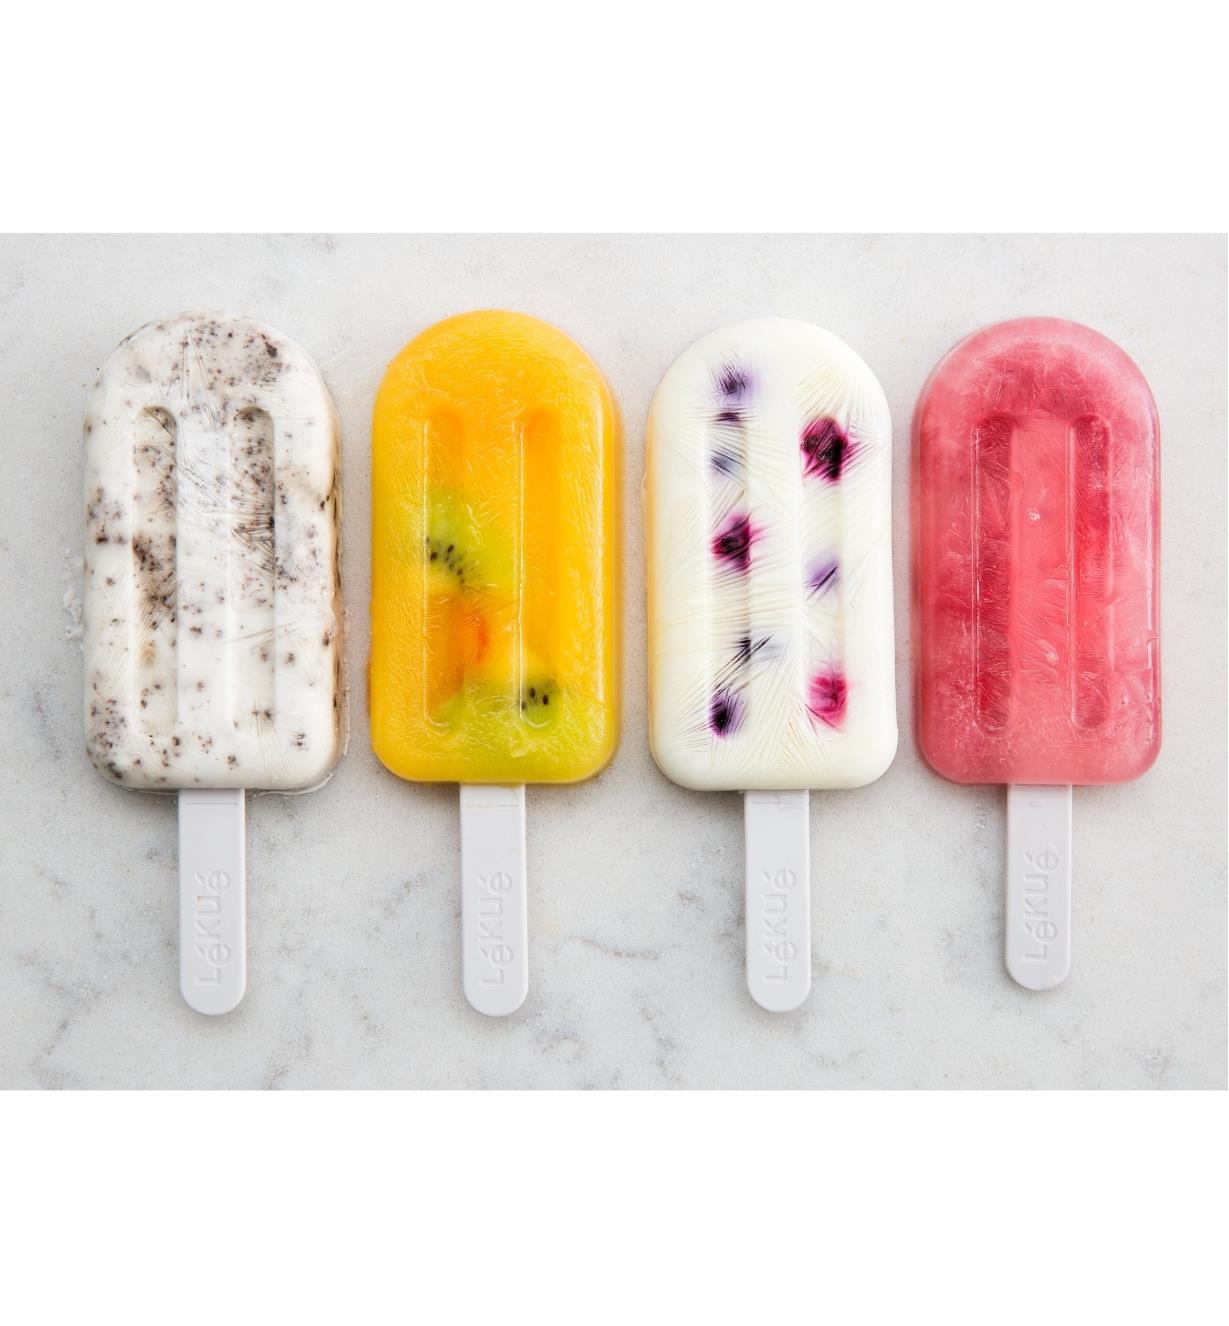 Four examples of different ice pops made with the ice pop molds